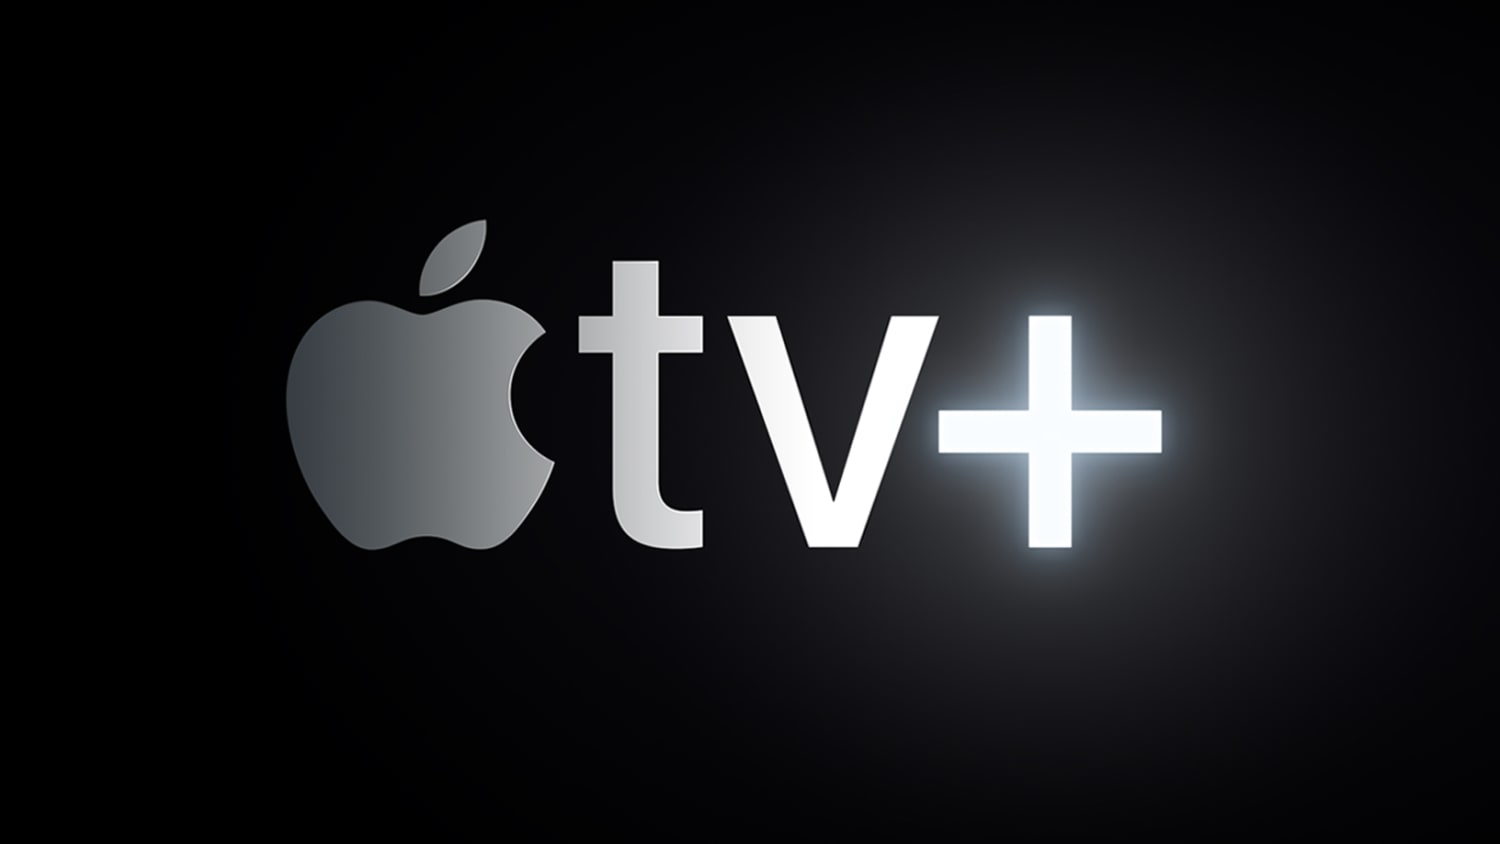 free-trial-offer-for-apple-tv-may-be-extended-20200827-1